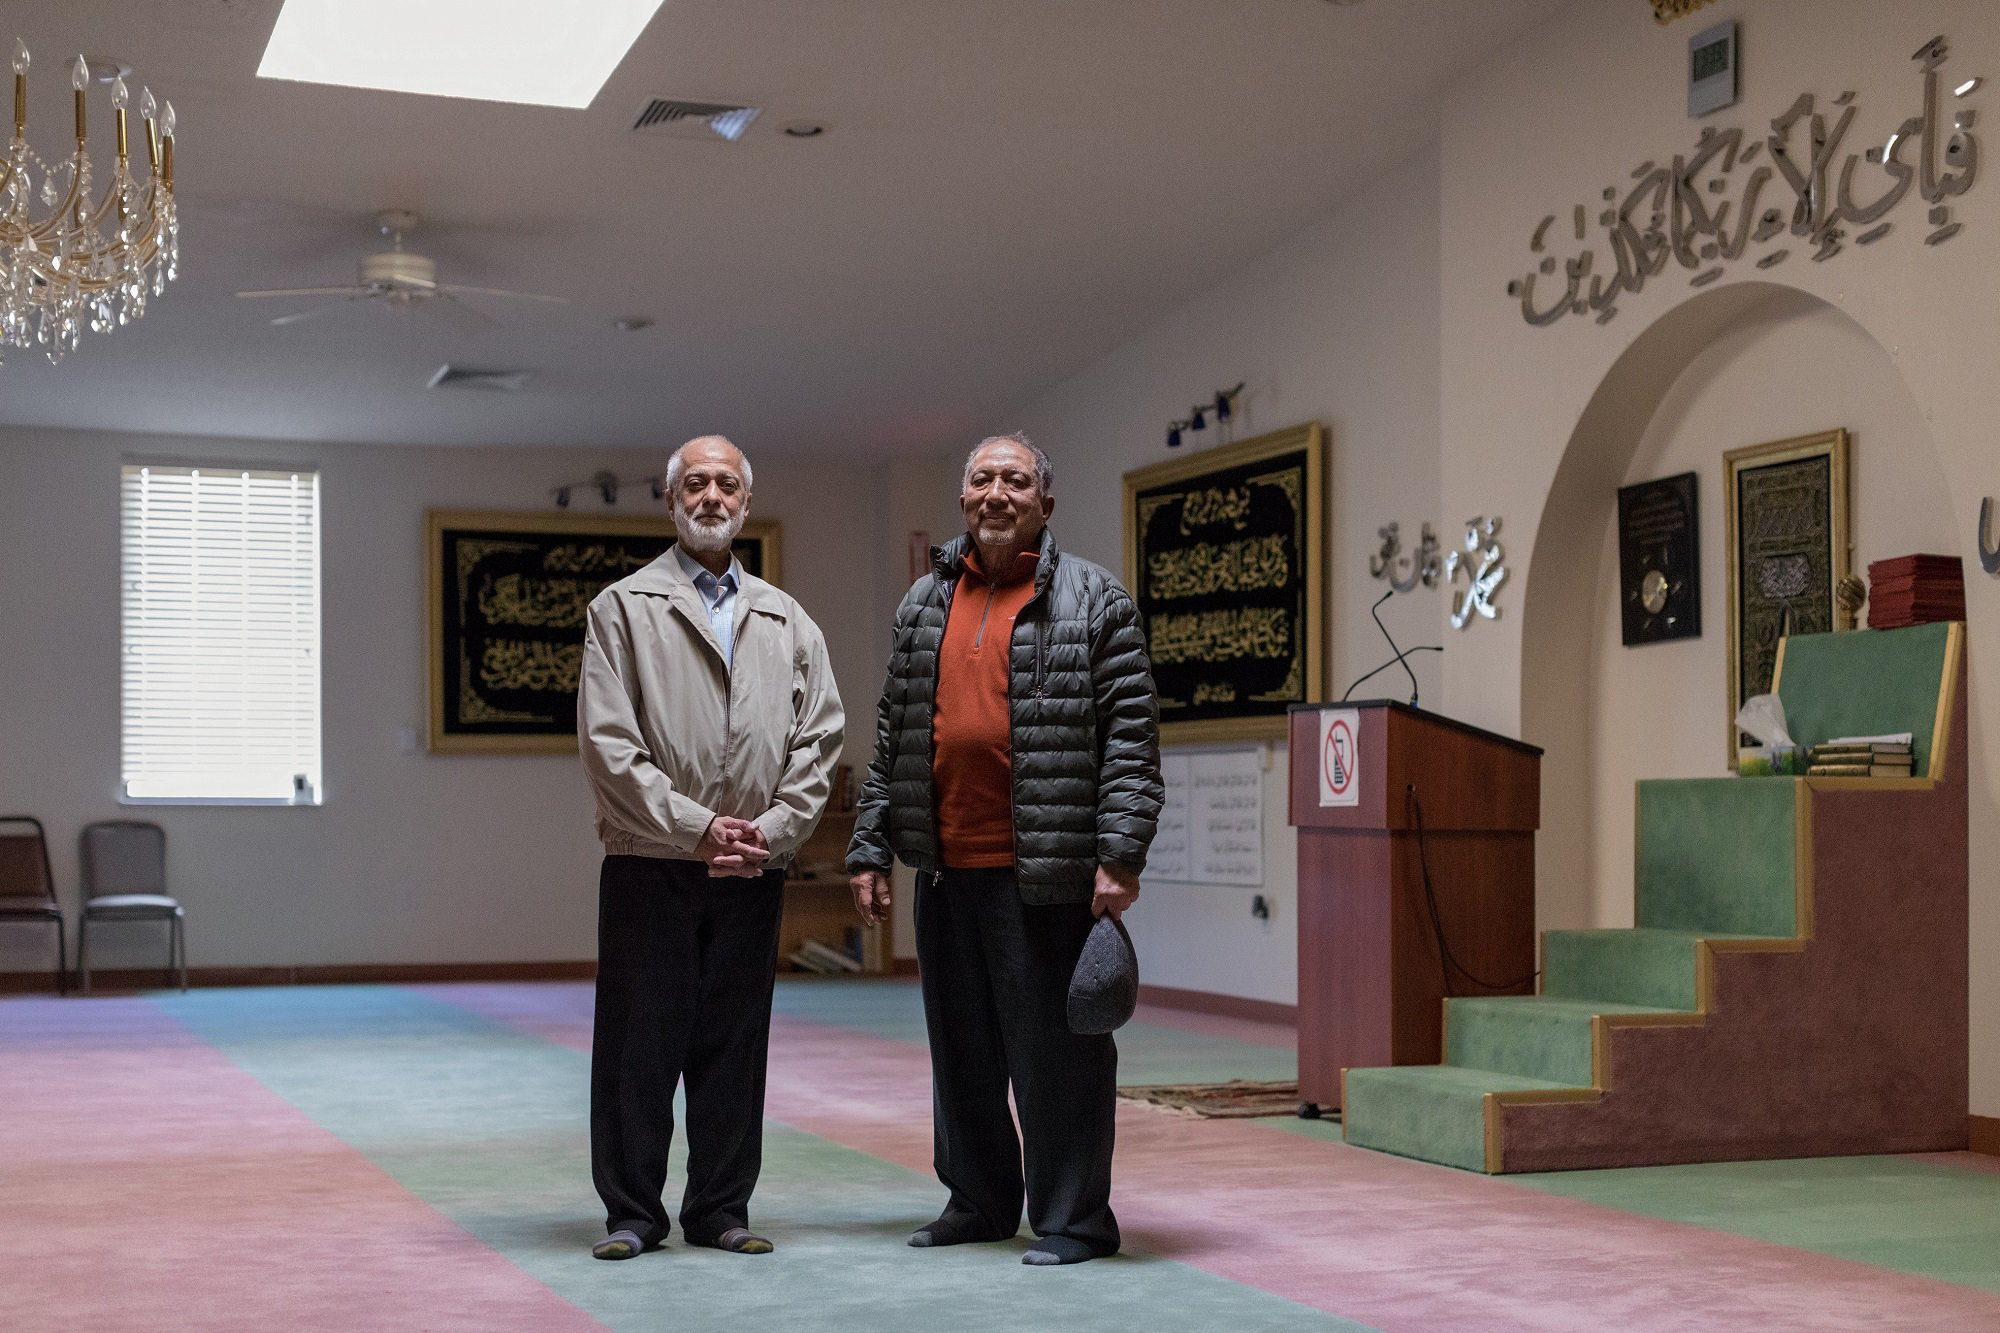 Photo: immigrants from India and Pakistan stand inside the Princeton Masjid, home of the Islamic Society of Appalachian Region. Credit: Jessie Parks/ODI, 2018